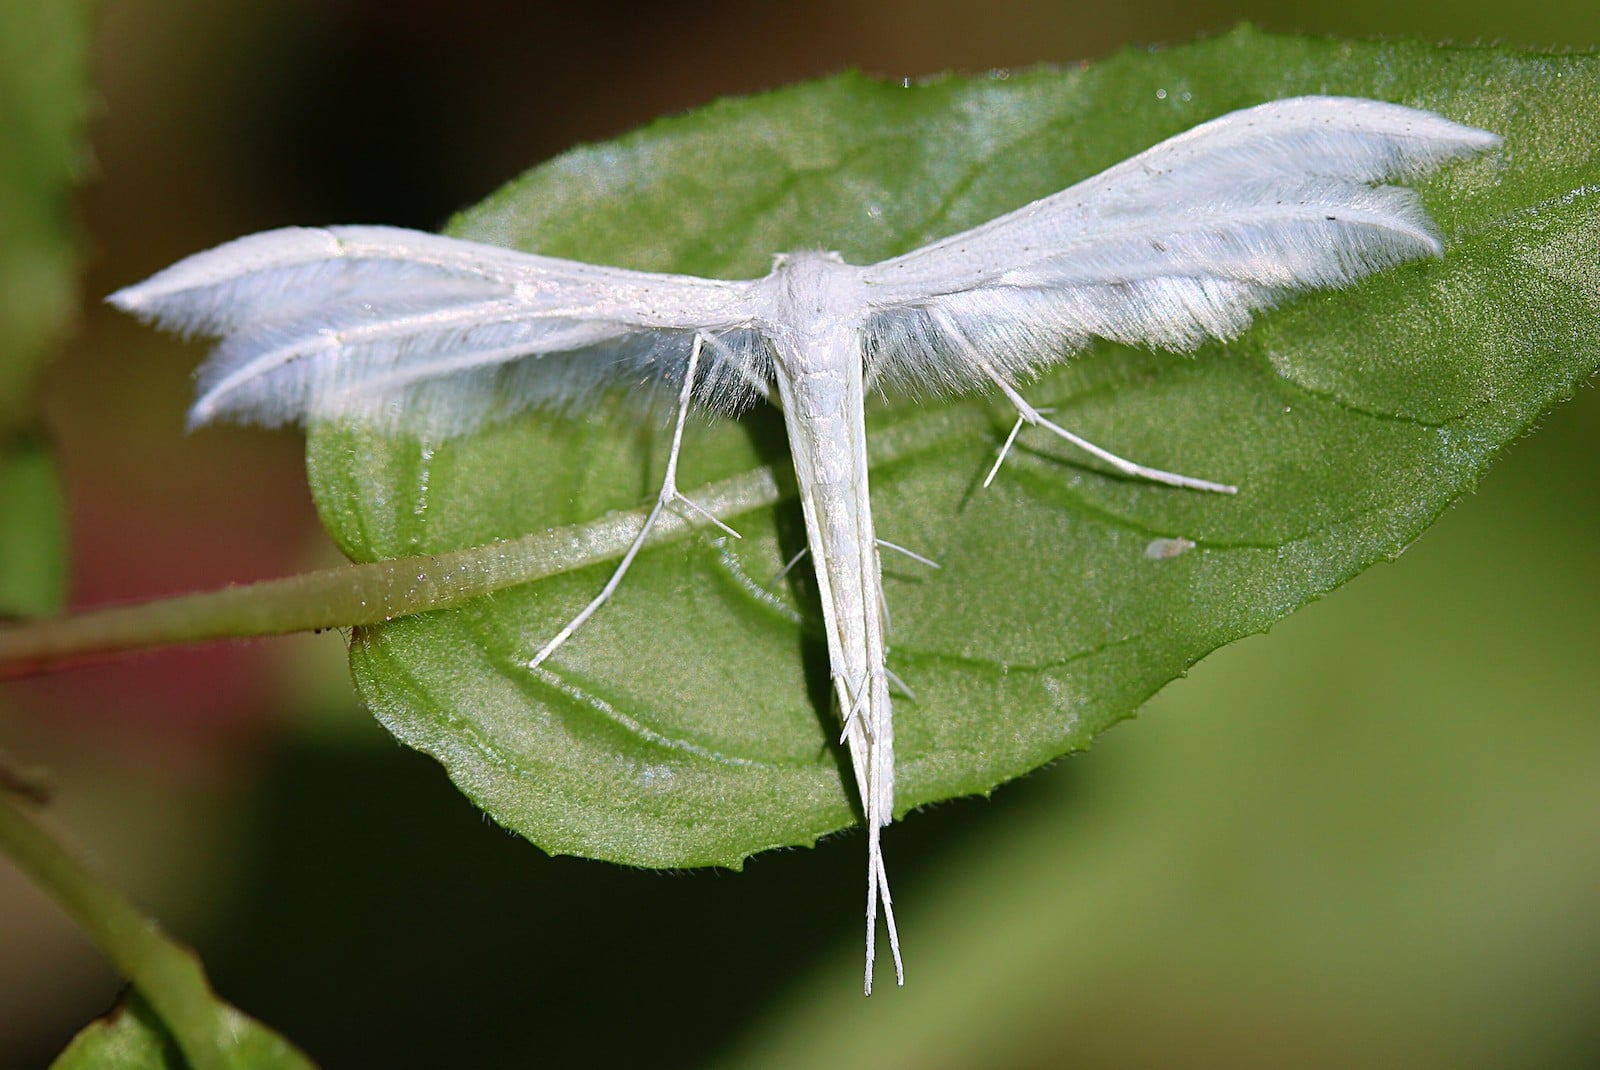 Image of a white Plume Moth